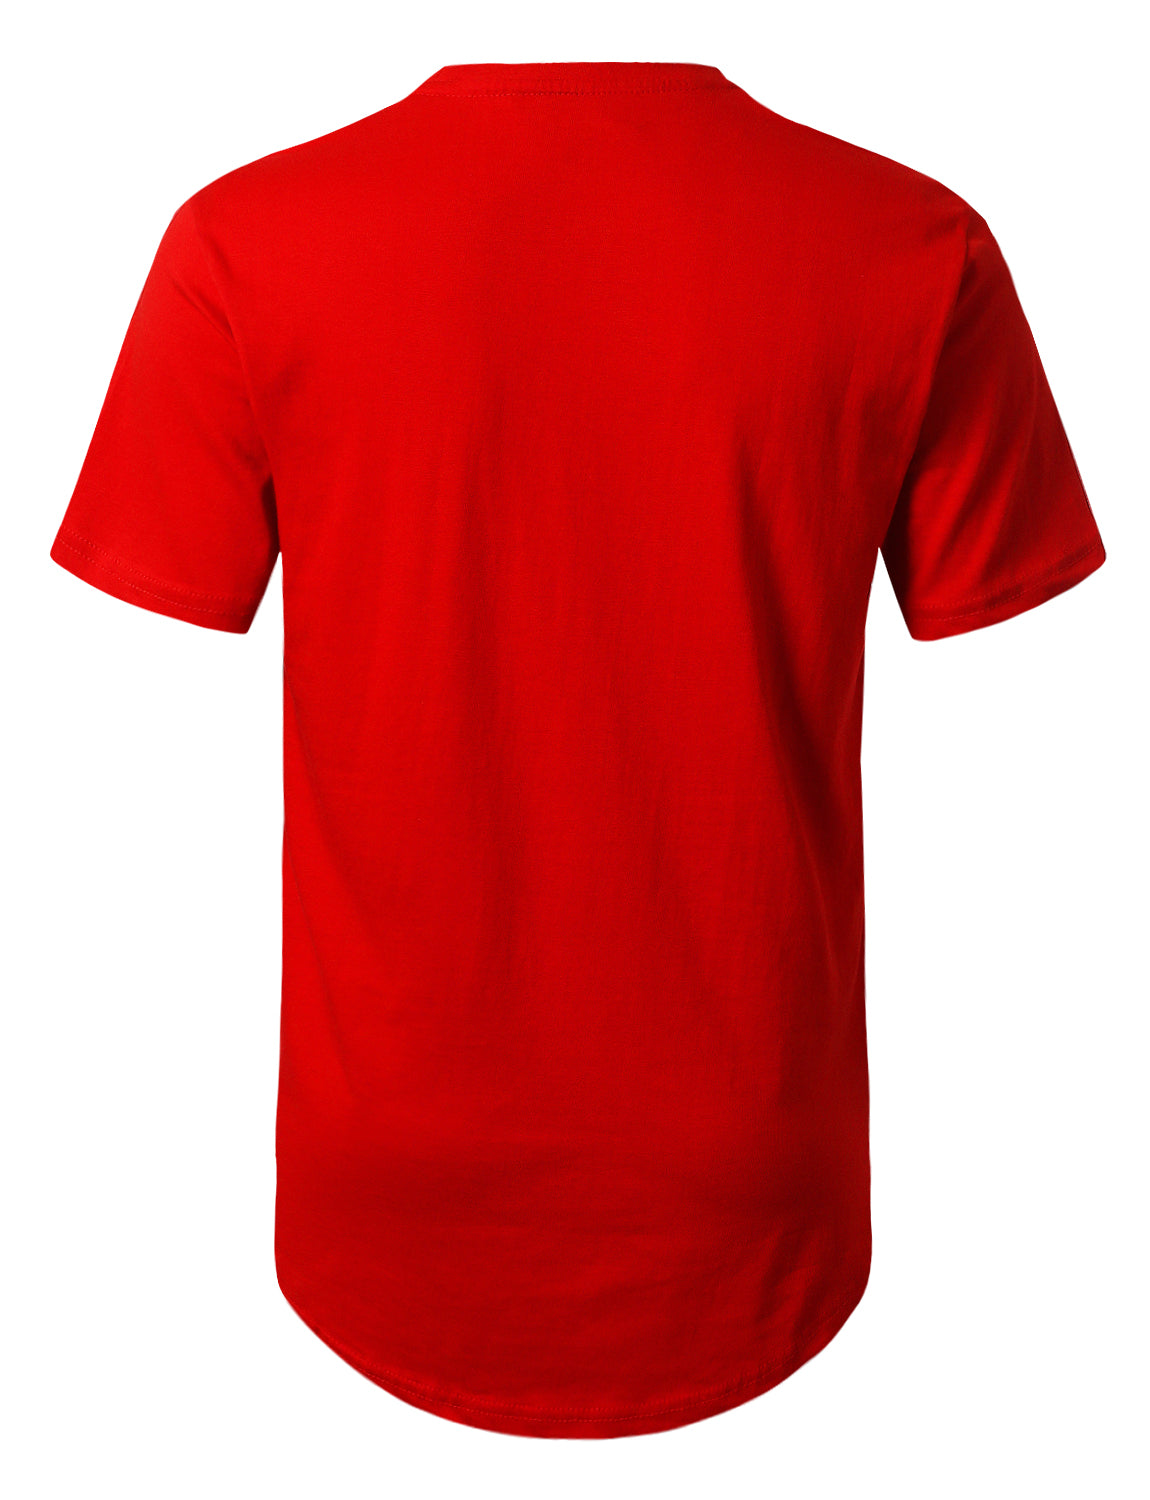 RED Legacy 23 Printed T-shirt - URBANCREWS